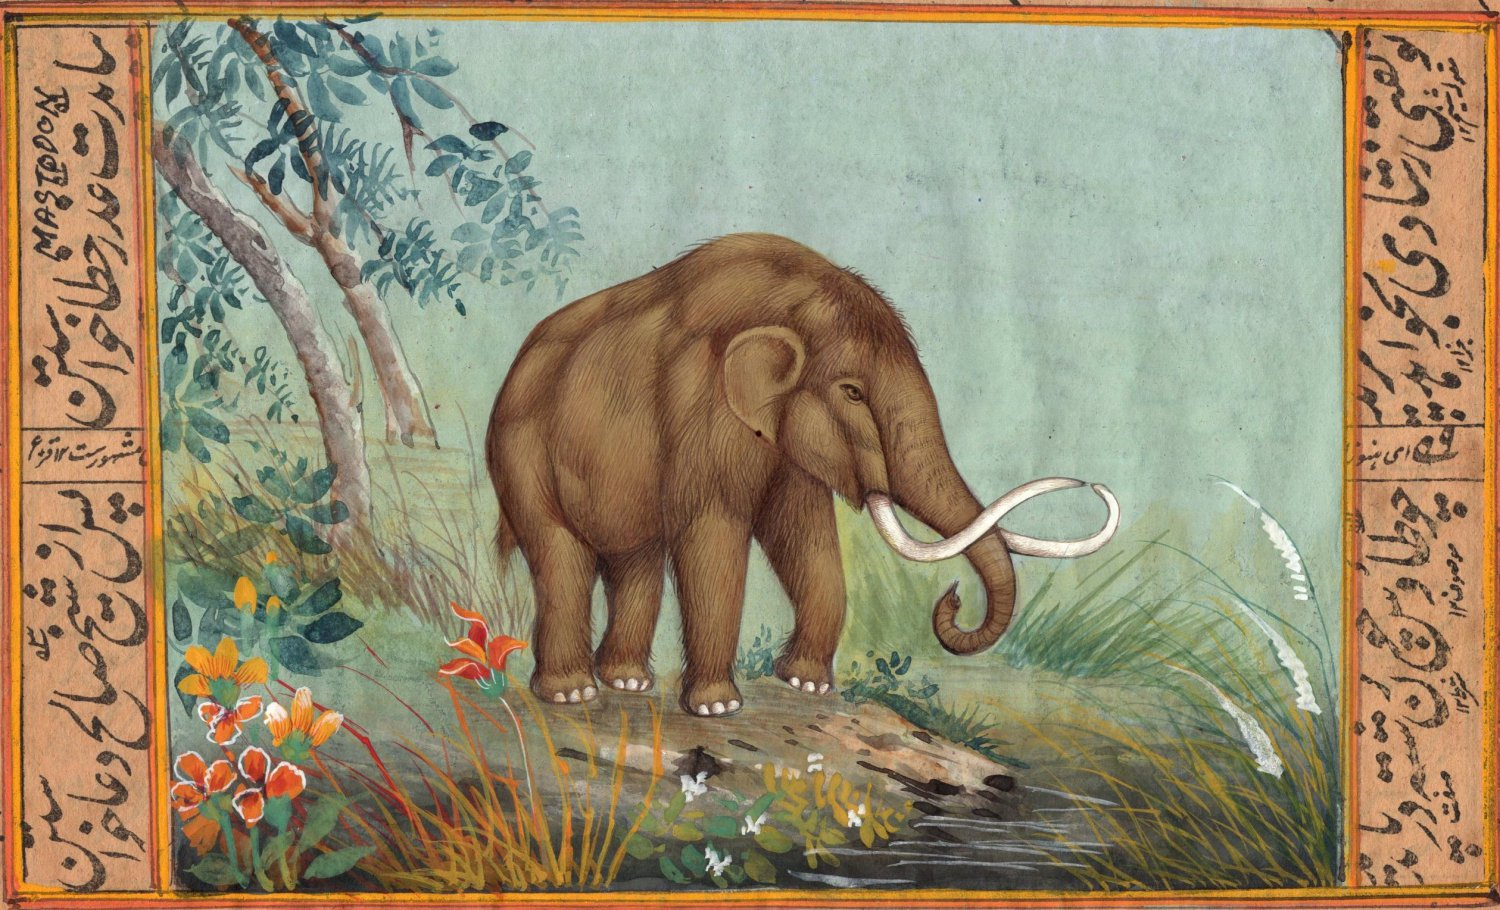 Mastodon Art Handmade Extinct Wild Animal Pre Historic Indian Miniature Painting